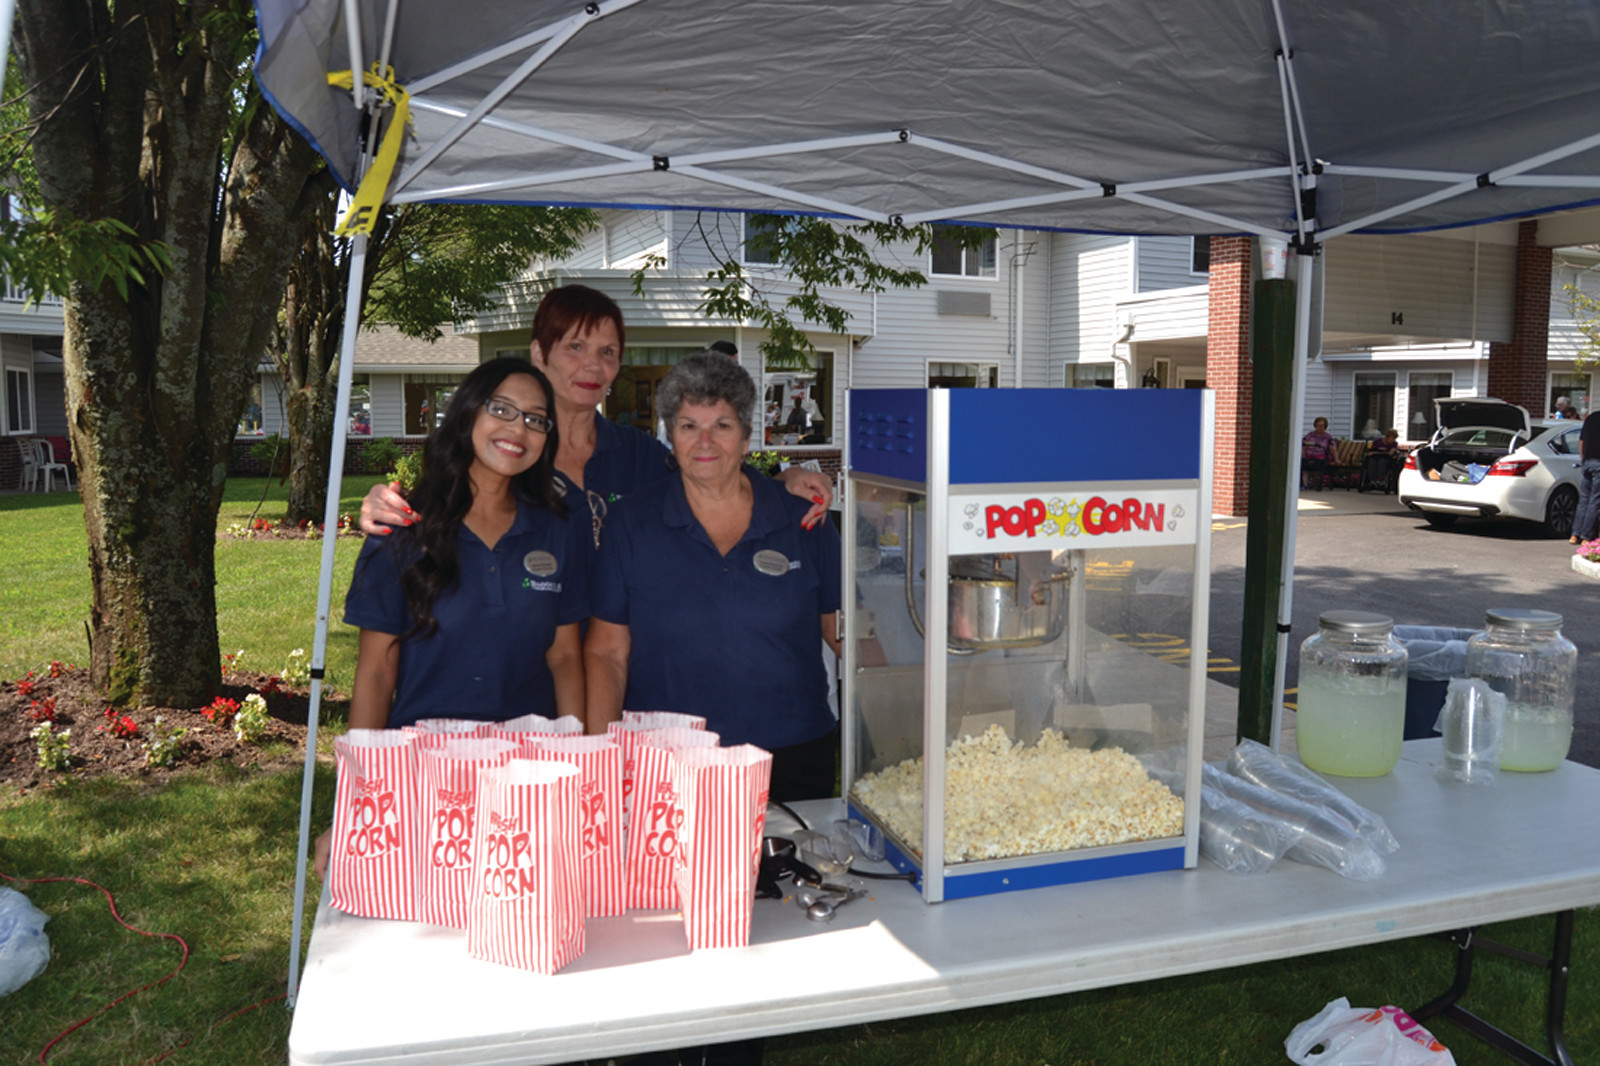 READY TO SERVE: Pocasset Bay employees were on hand to provide popcorn and lemonade to the day's visitors.